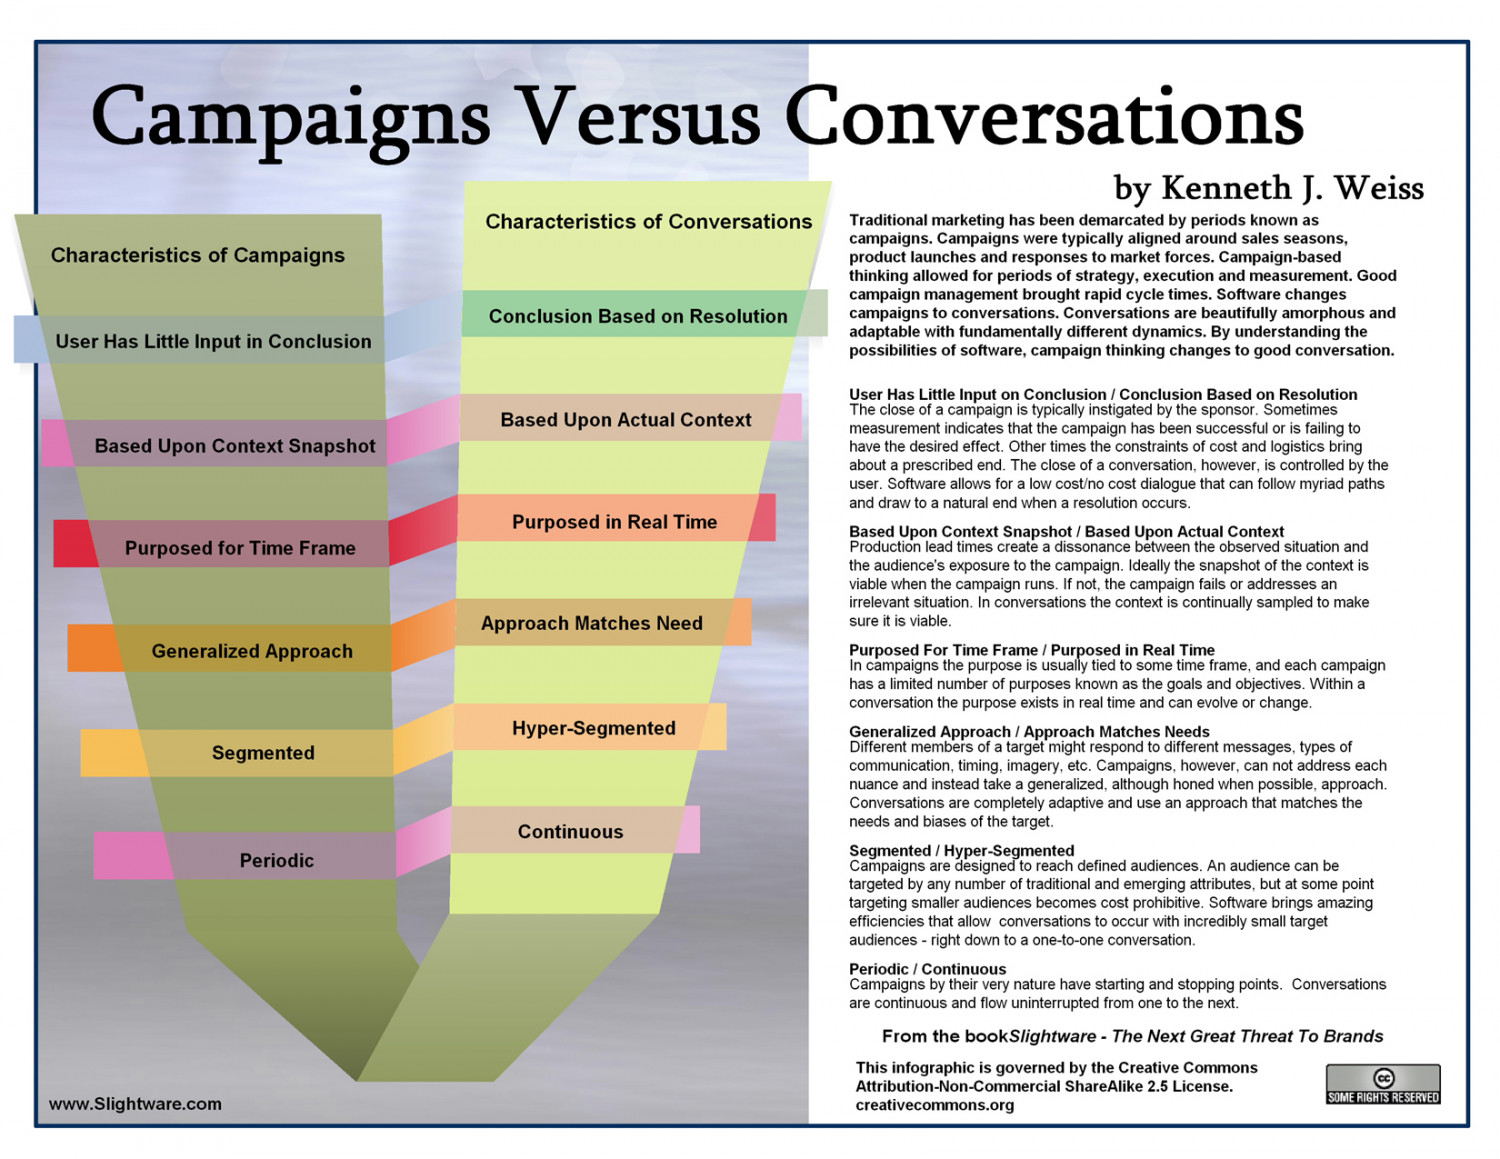 Campaigns versus Conversations Infographic